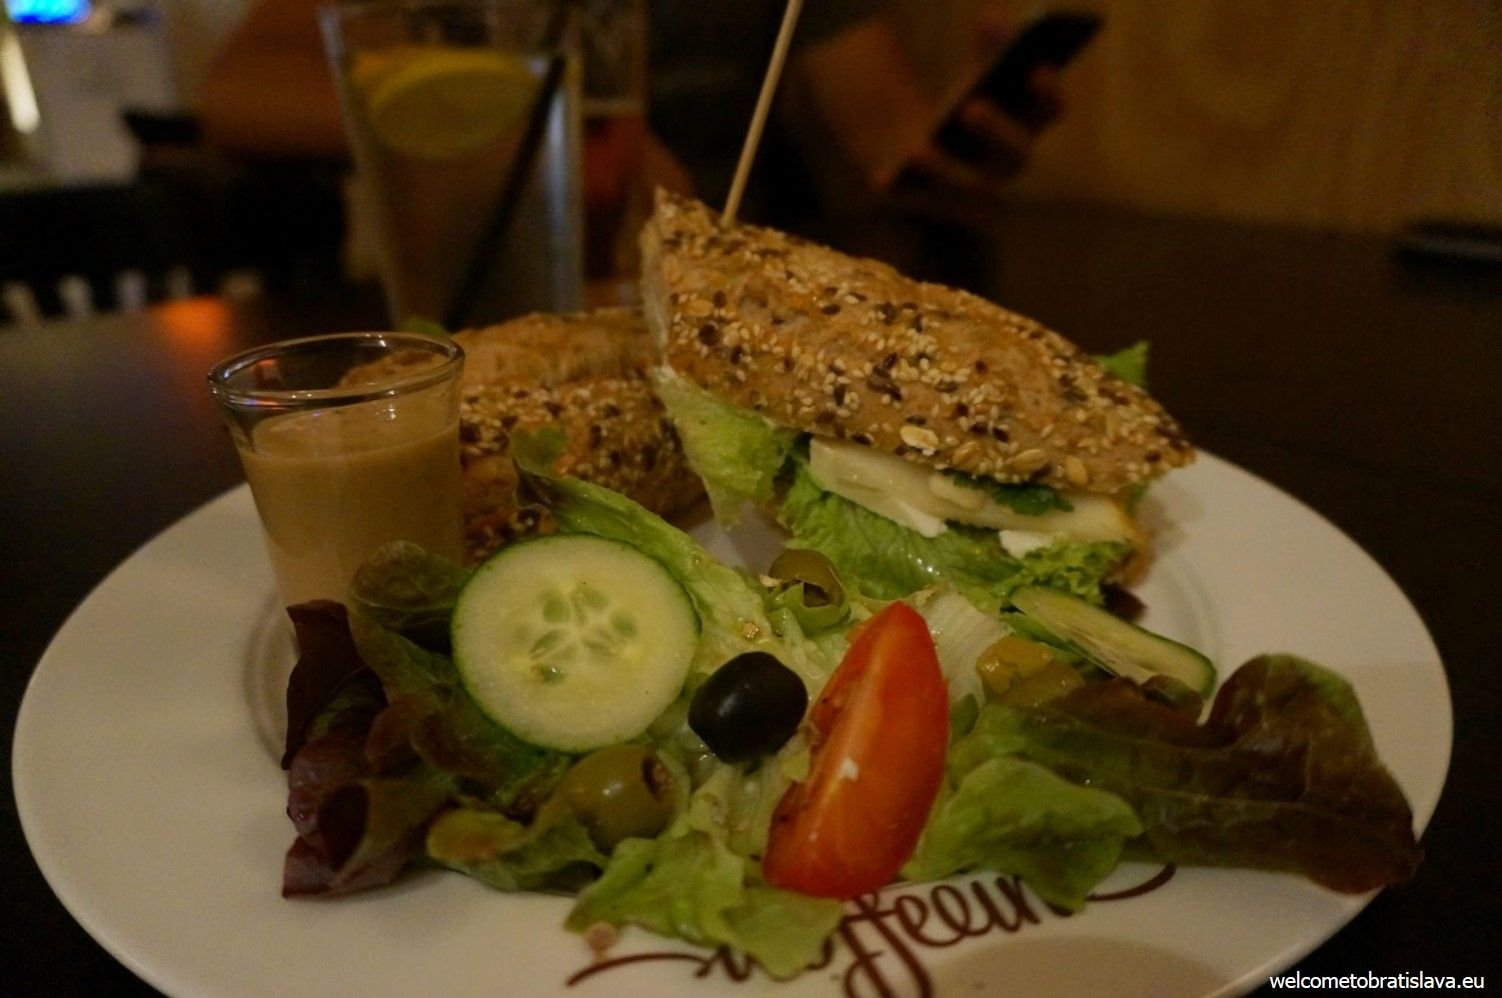 The Chaplin baguette with goat cheese, mixed salad, coriander, almonds and pear slices